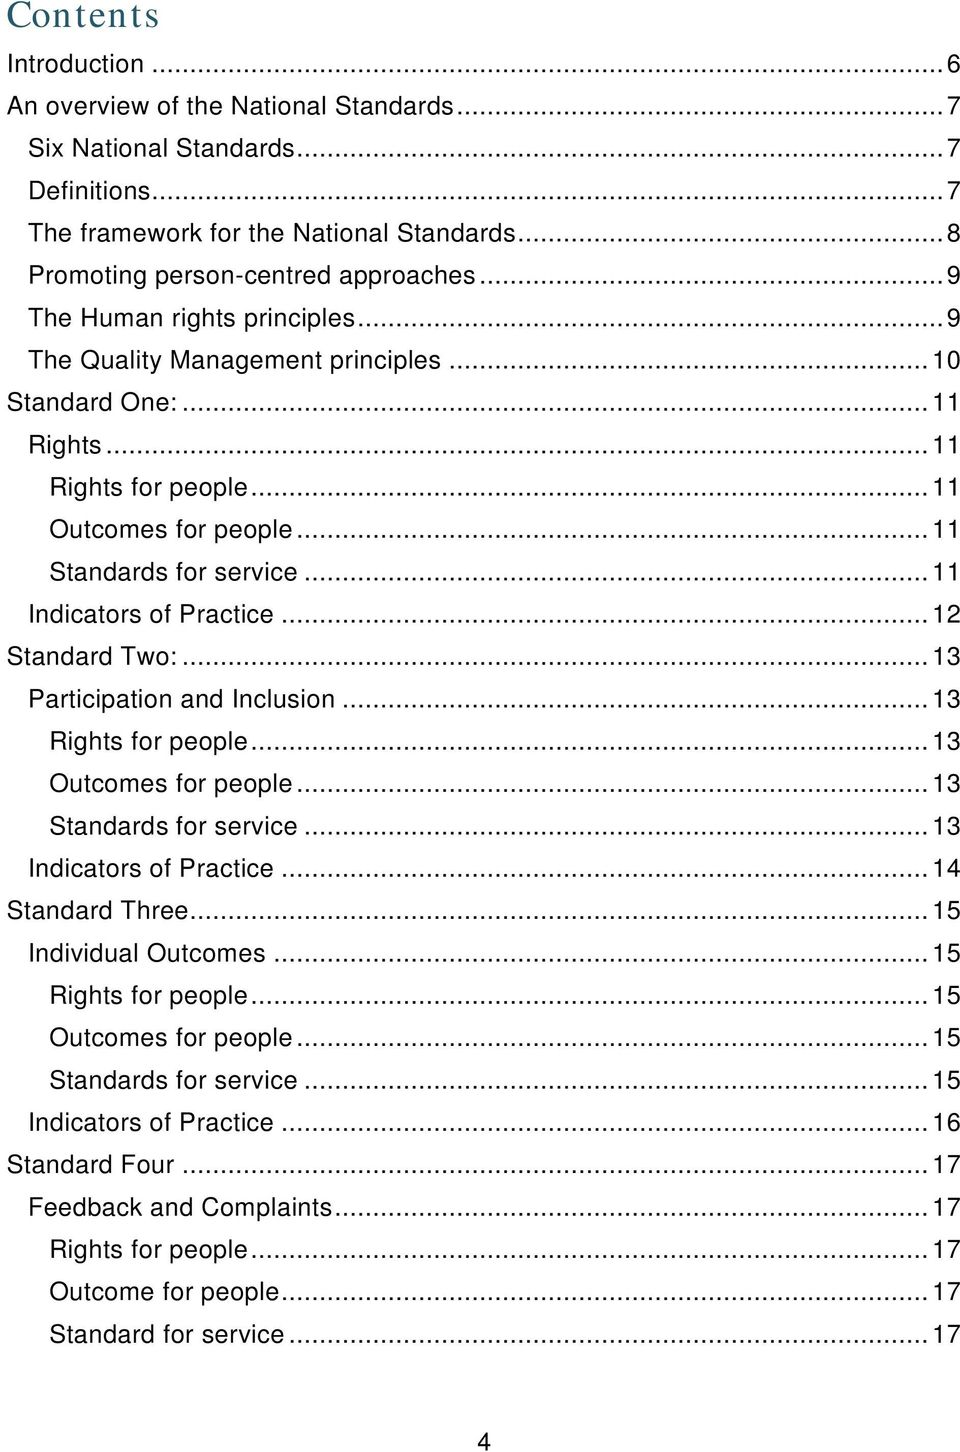 .. 11 Indicators of Practice... 12 Standard Two:... 13 Participation and Inclusion... 13 Rights for people... 13 Outcomes for people... 13 Standards for service... 13 Indicators of Practice.